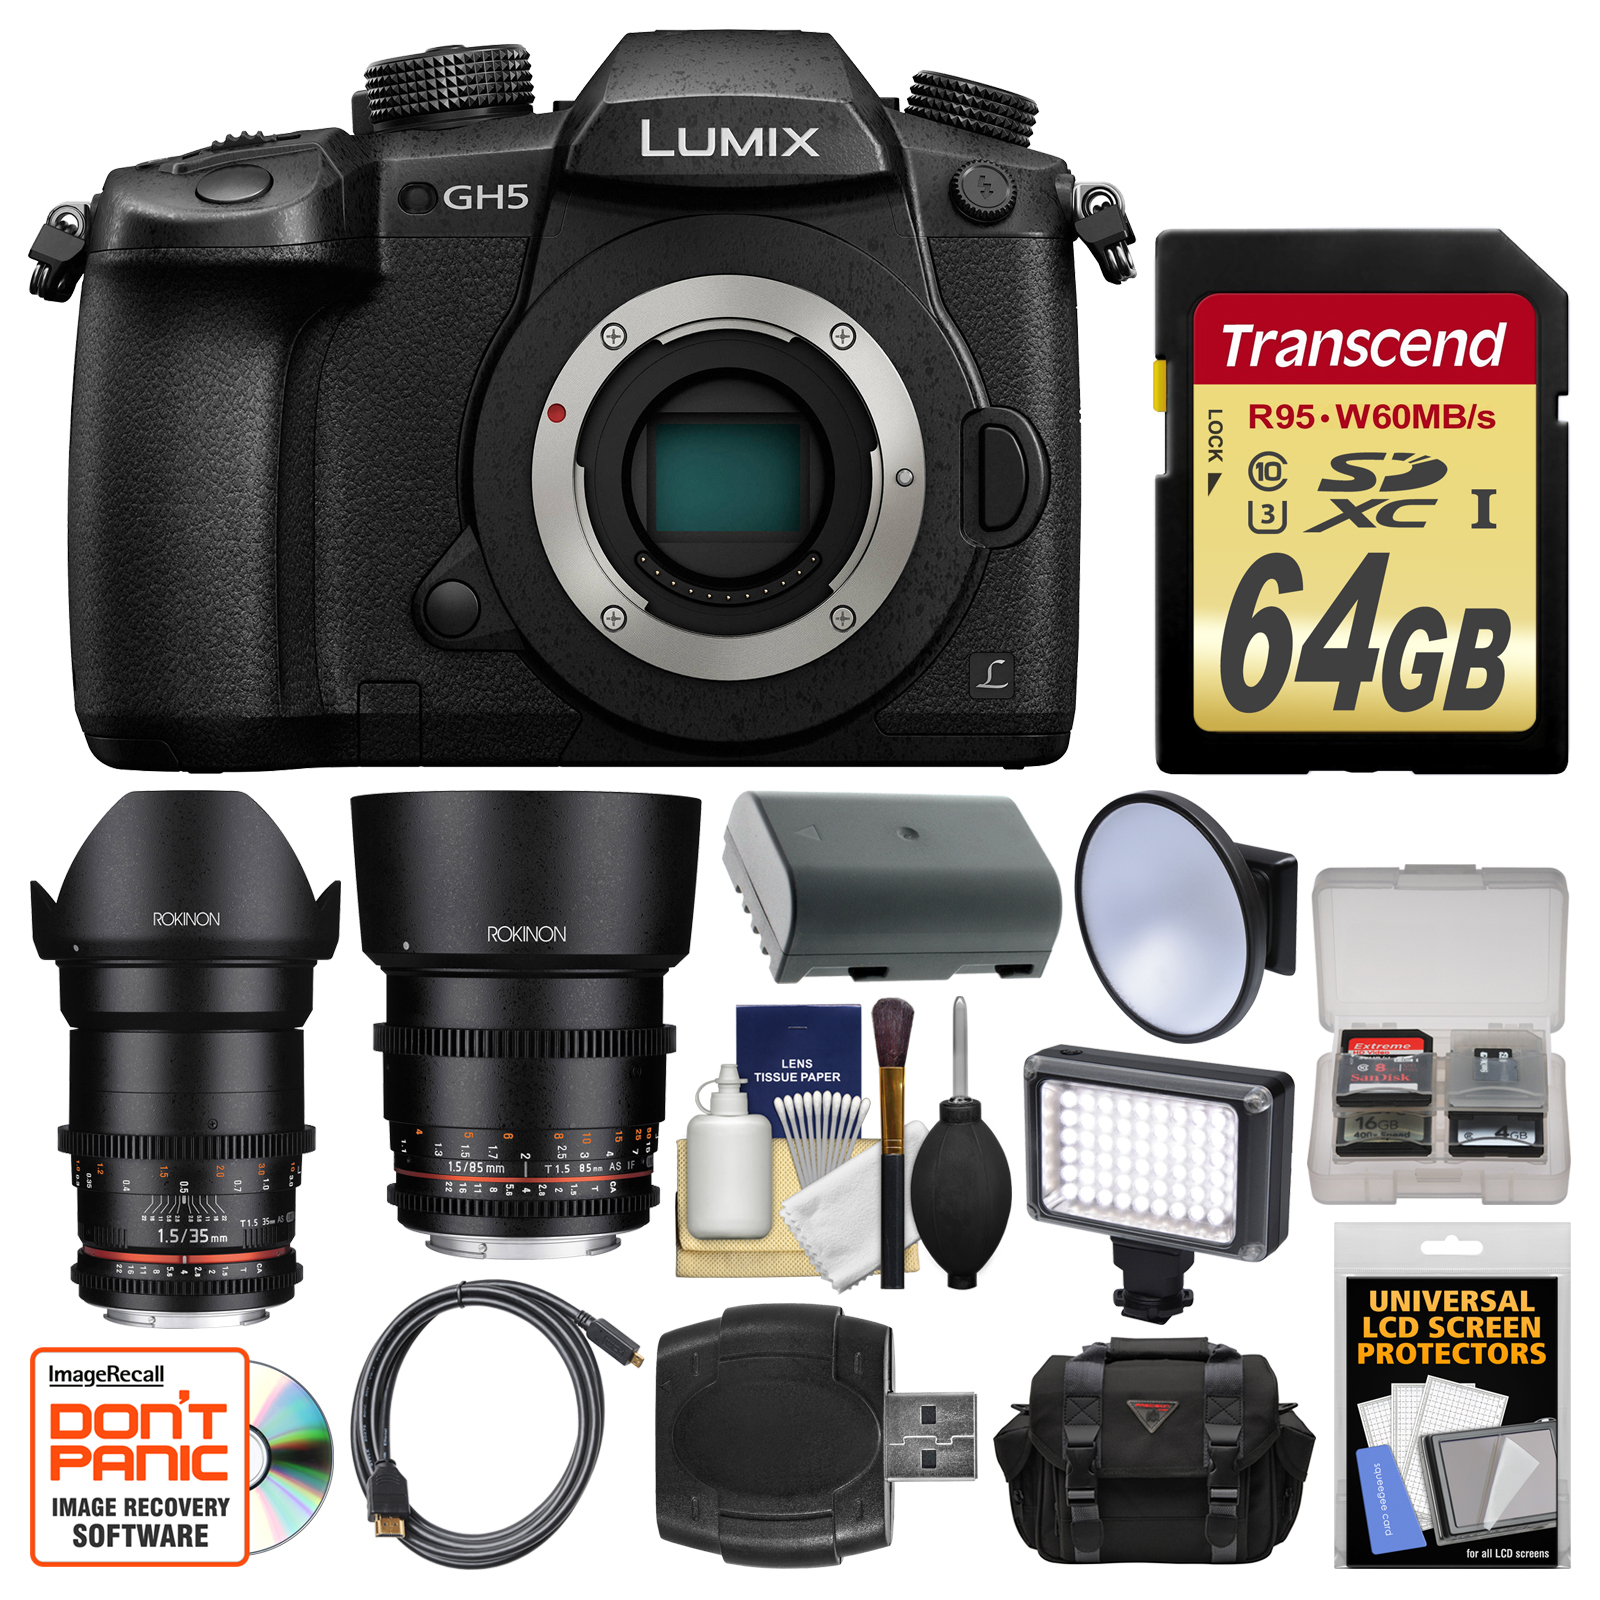 Panasonic Lumix DC-GH5 Wi-Fi 4K Digital Camera Body with 35mm & 85mm T 1.5 Lenses + 64GB Card + Case + Video... by Panasonic